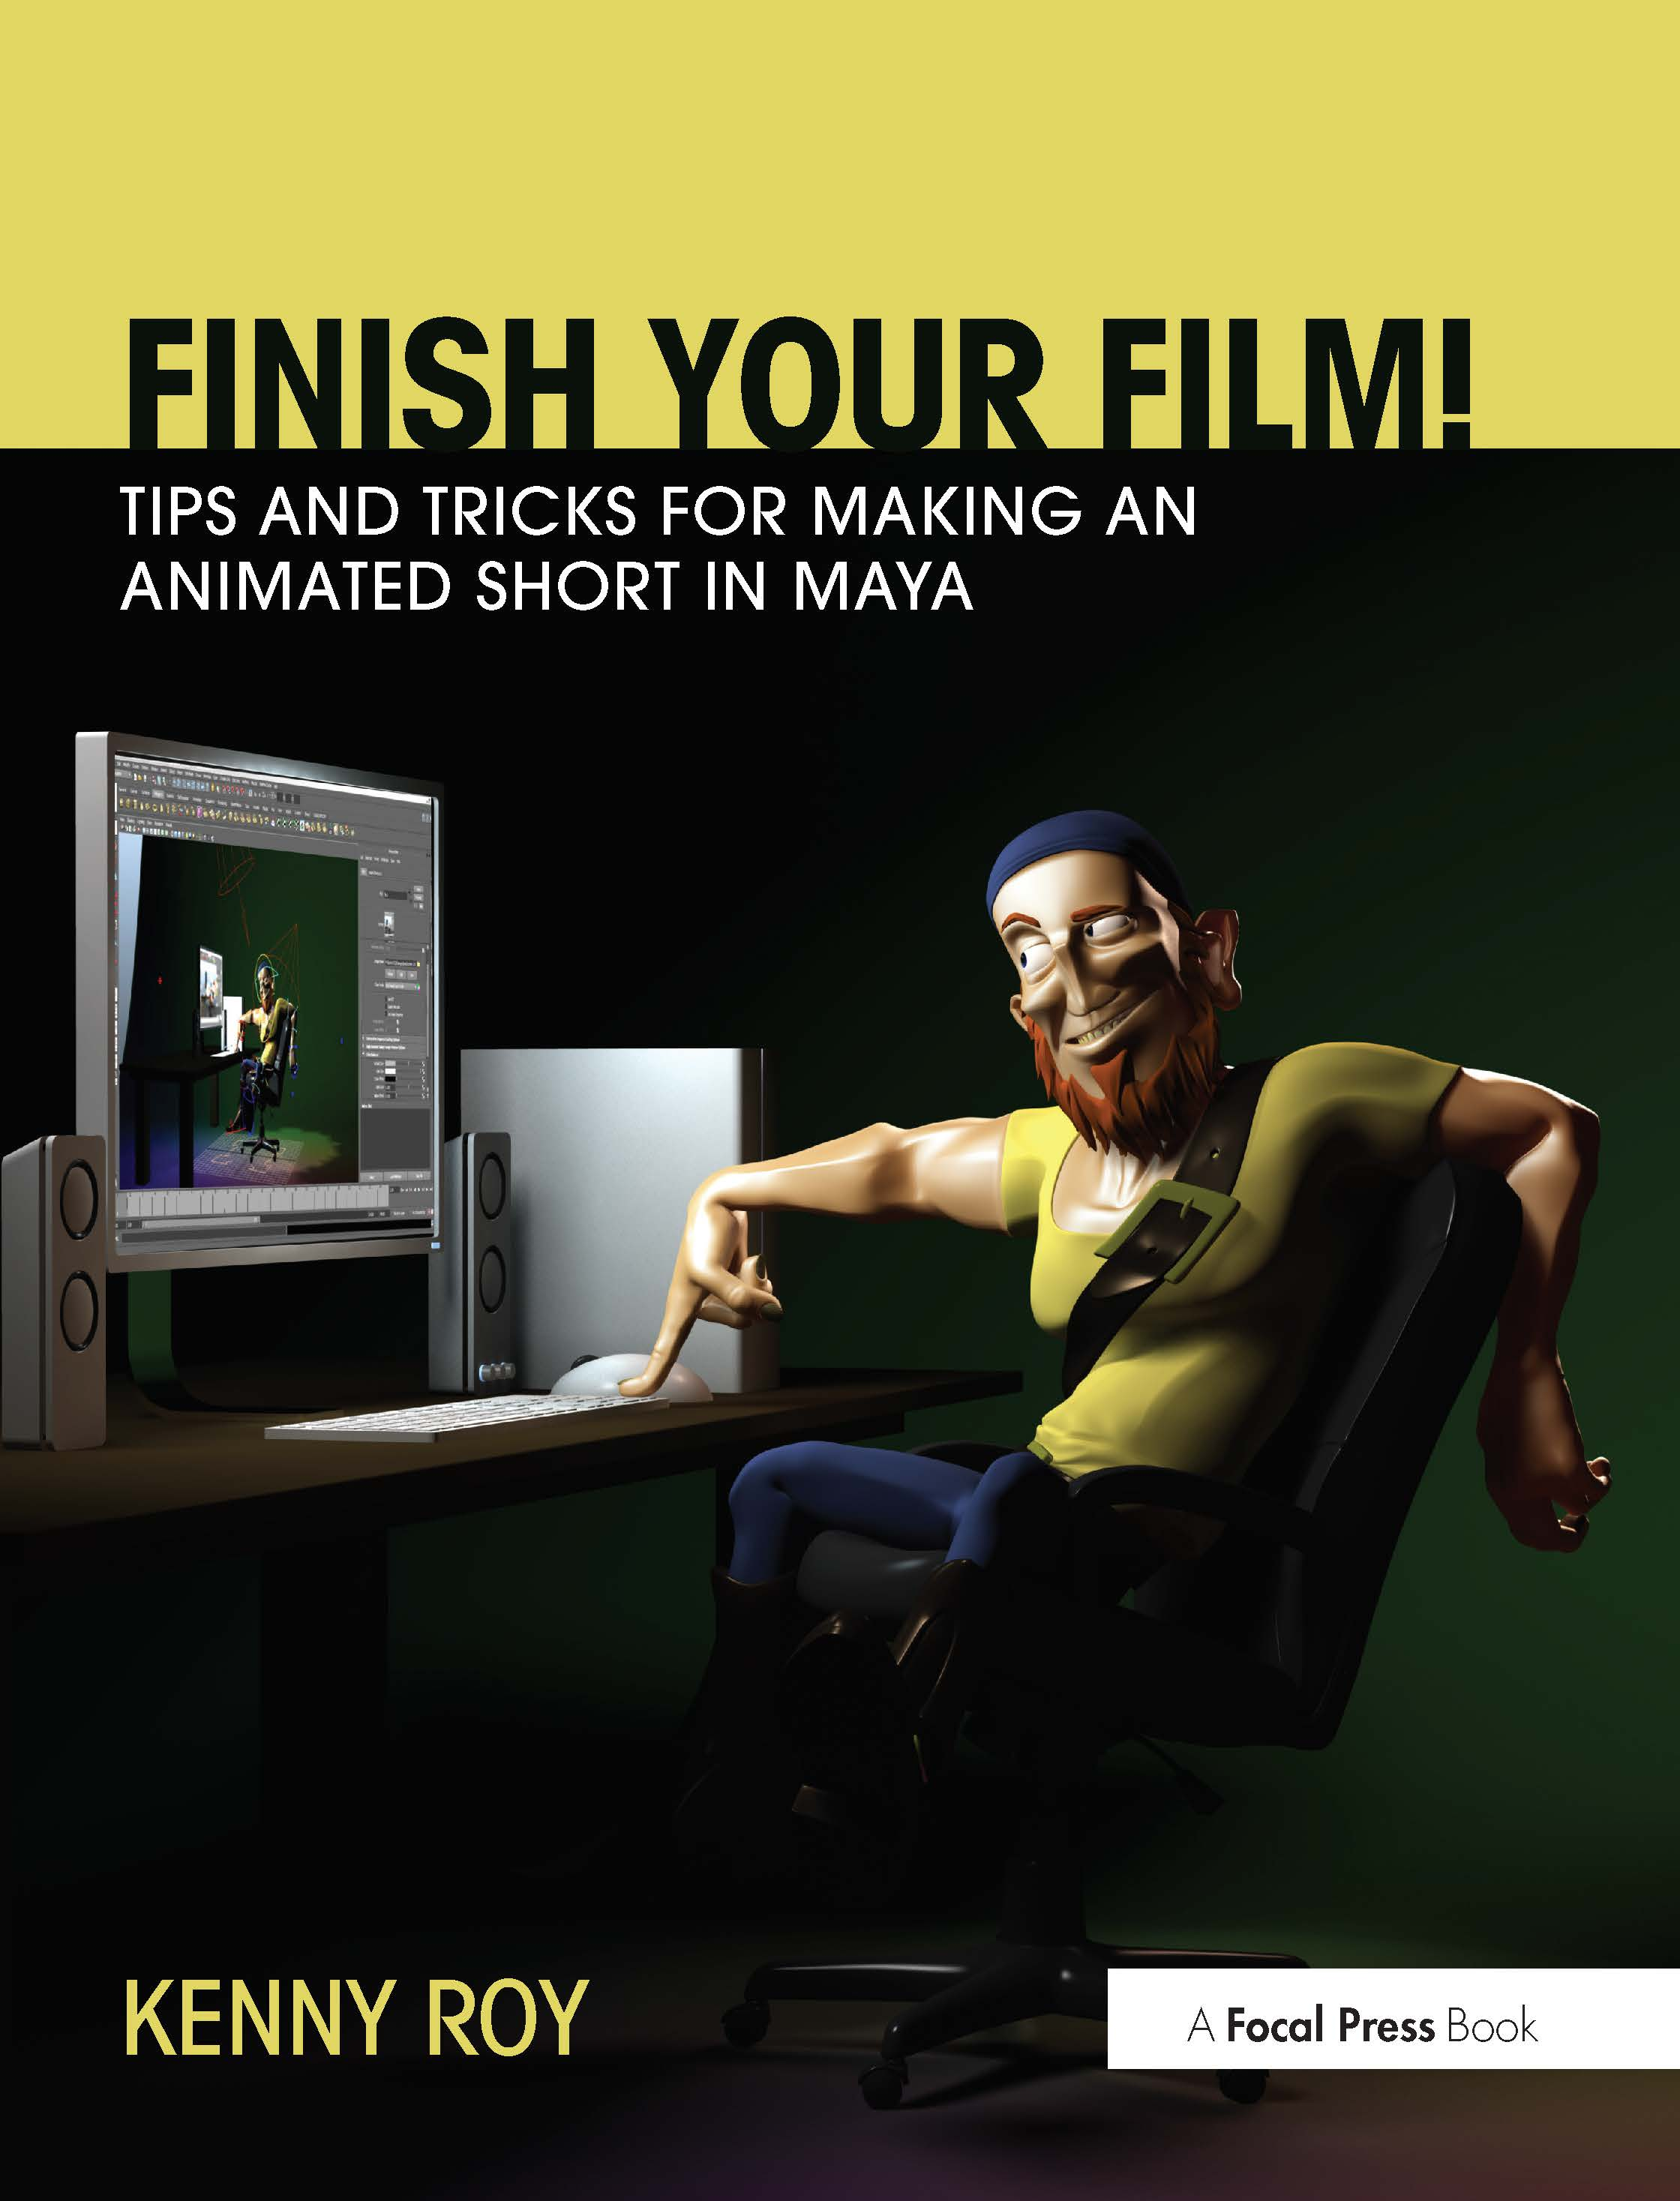 Finish Your Film! Tips and Tricks for Making an Animated Short in Maya book cover